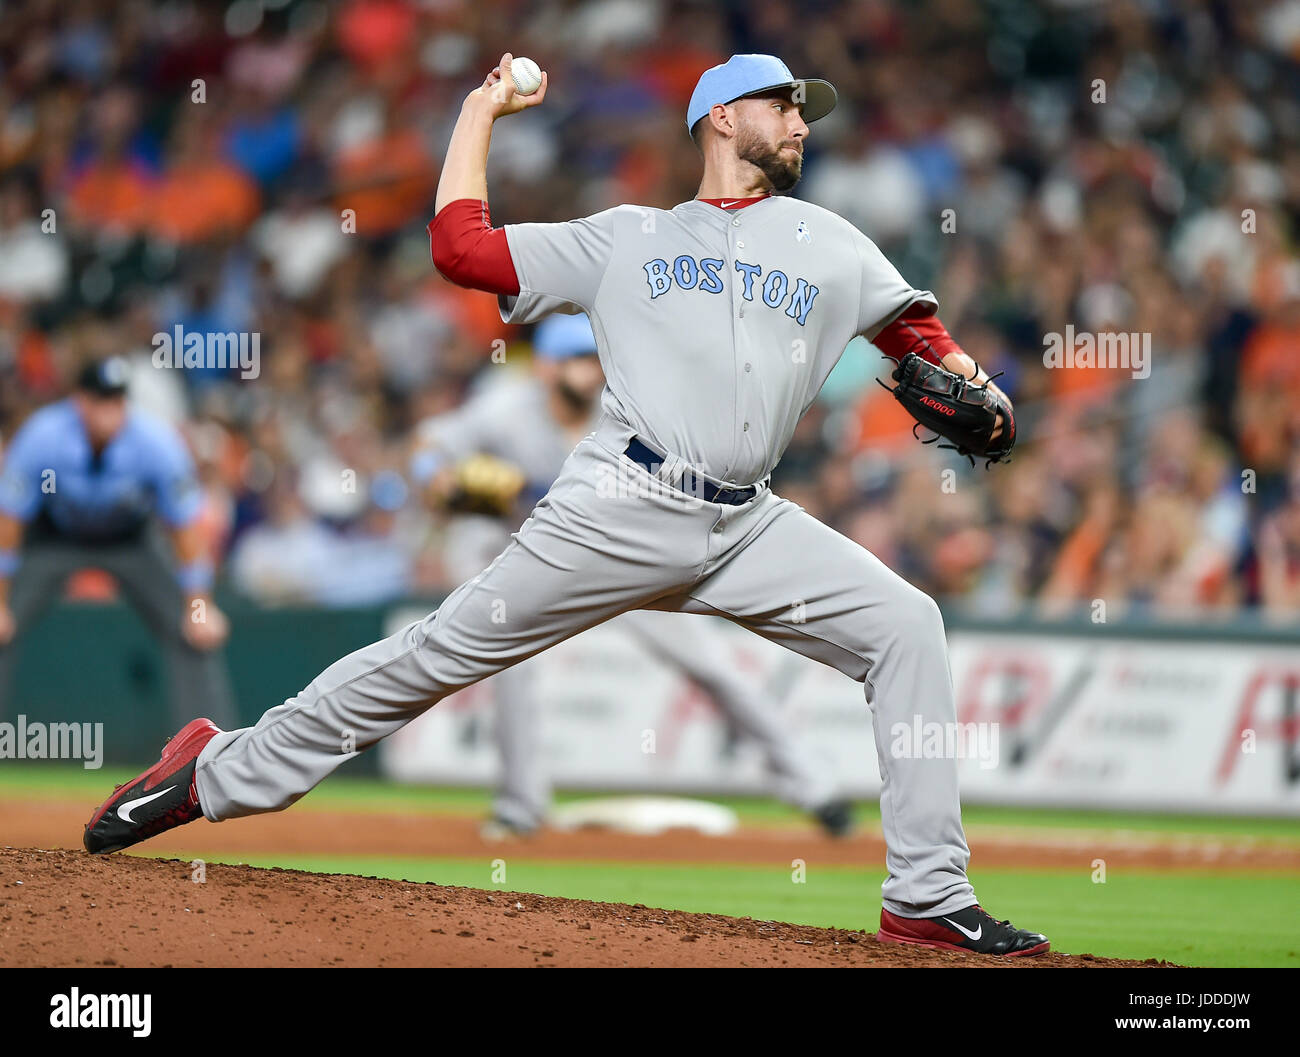 baa4ffbbb76 Boston Red Sox relief pitcher Matt Barnes (68) during a Major League  Baseball game between the Houston Astros and the Boston Red Sox at Minute  Maid ...